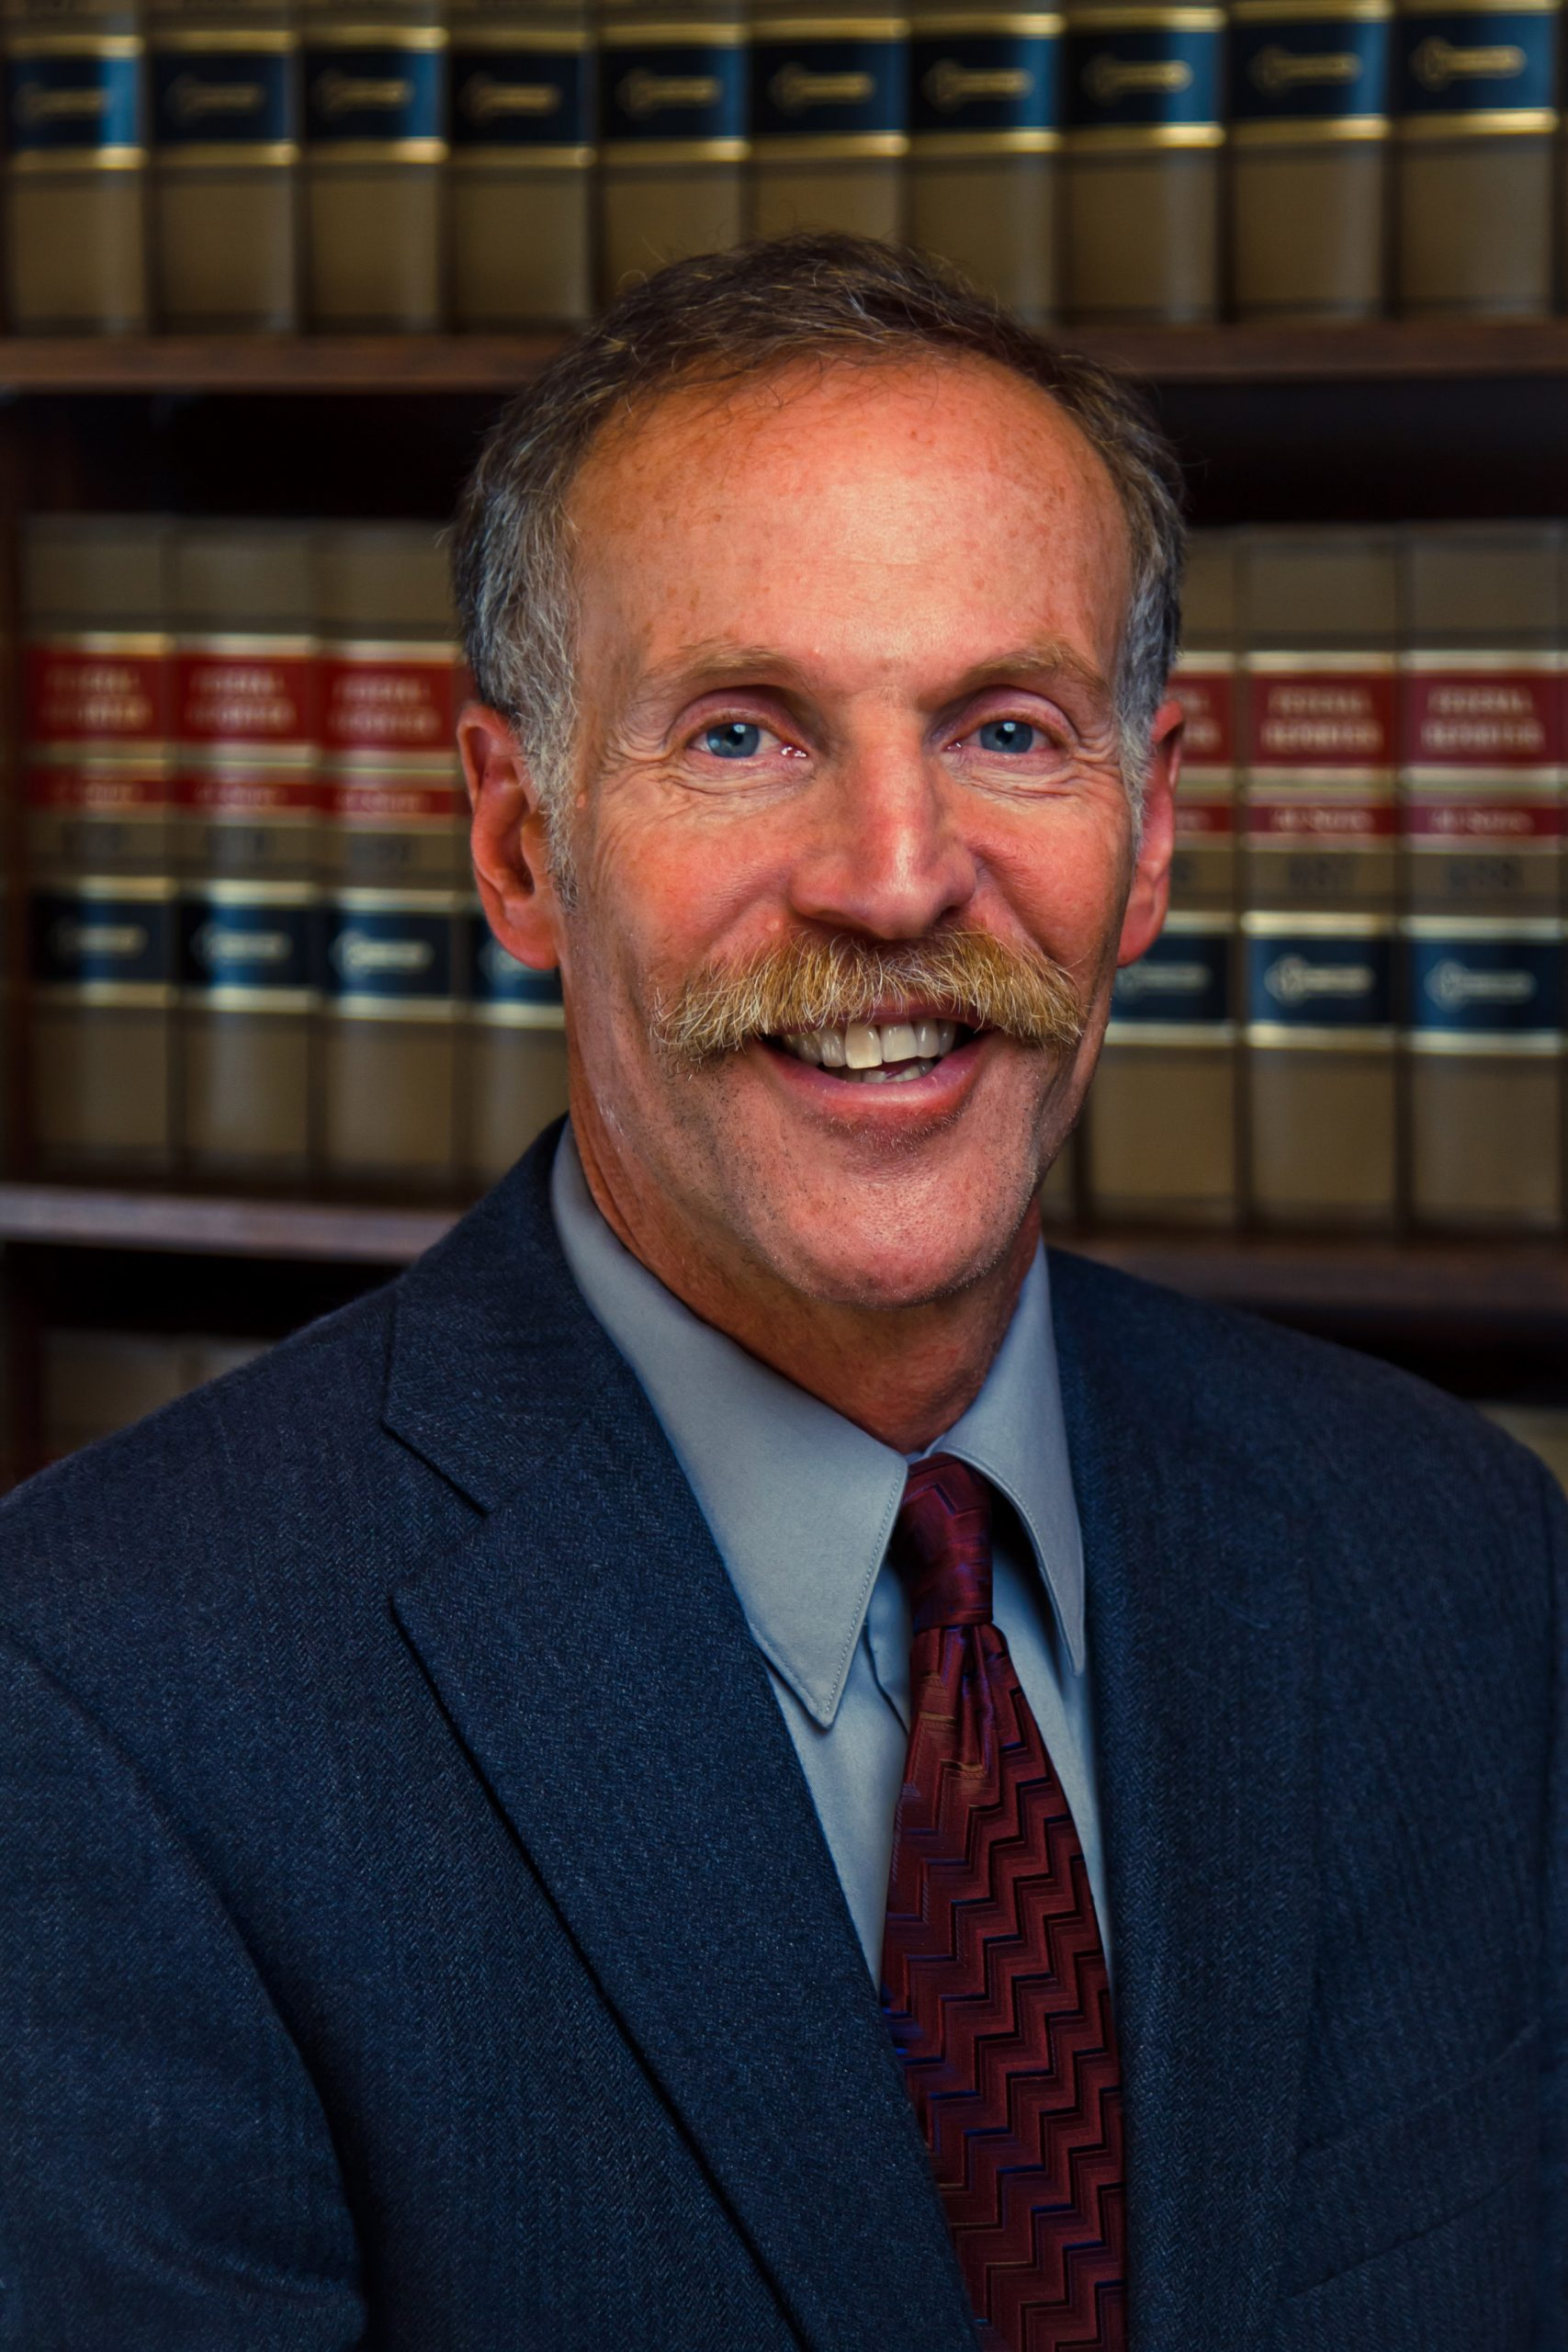 Robert W. Adler, dean for the S.J. Quinney College of Law.